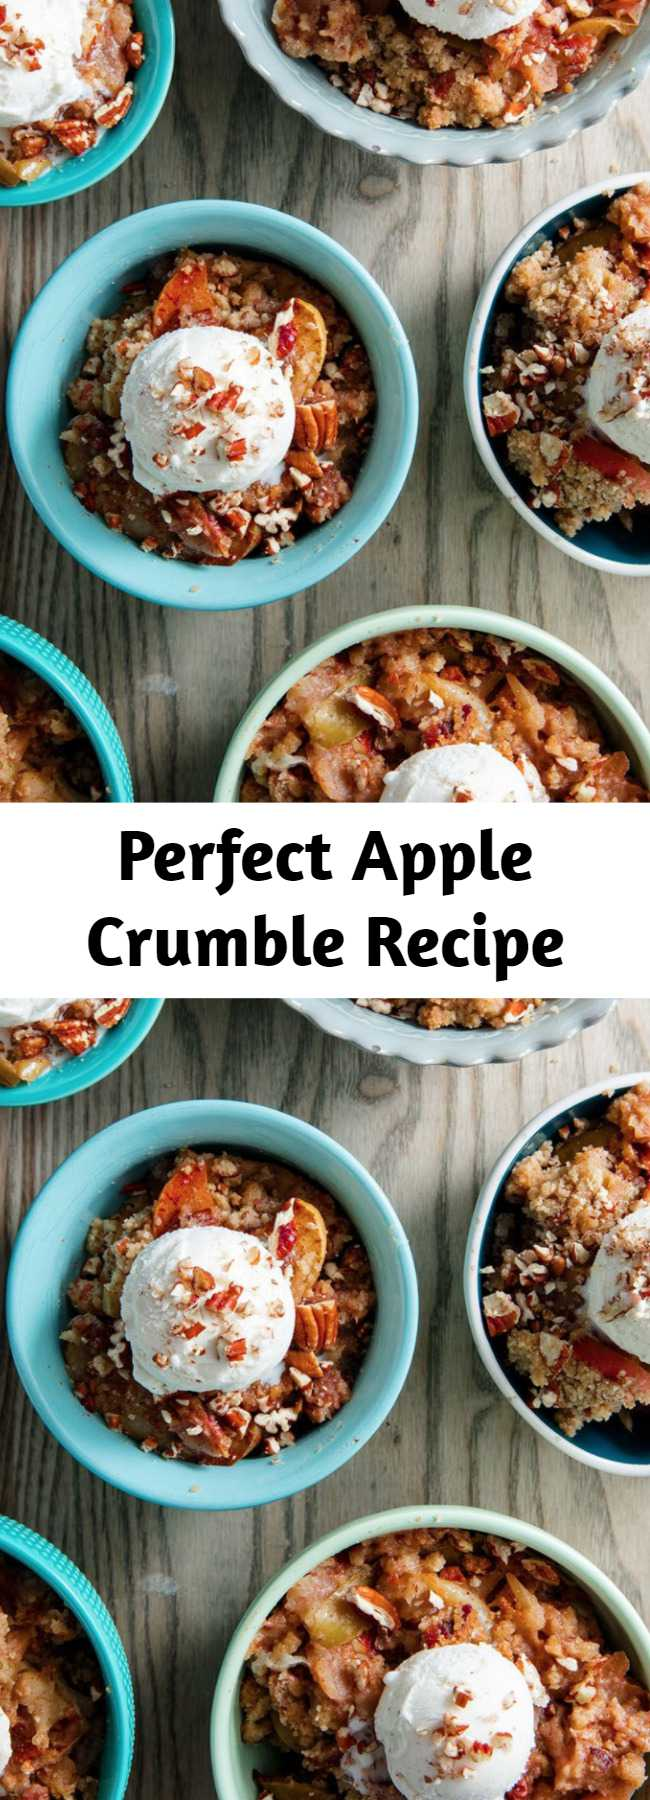 Perfect Apple Crumble Recipe - We love apple pie, but we're not so into making crust. Apple crumble is 1,000 times easier to make and, in our opinion, even better. The buttery pecan crumble is just too perfect, even without any oats. Below are our most helpful tips for making the perfect fall crumble. #easy #recipe #apple #crumble #dessert #baking #fall #brownsugar #pecans #pie #topping